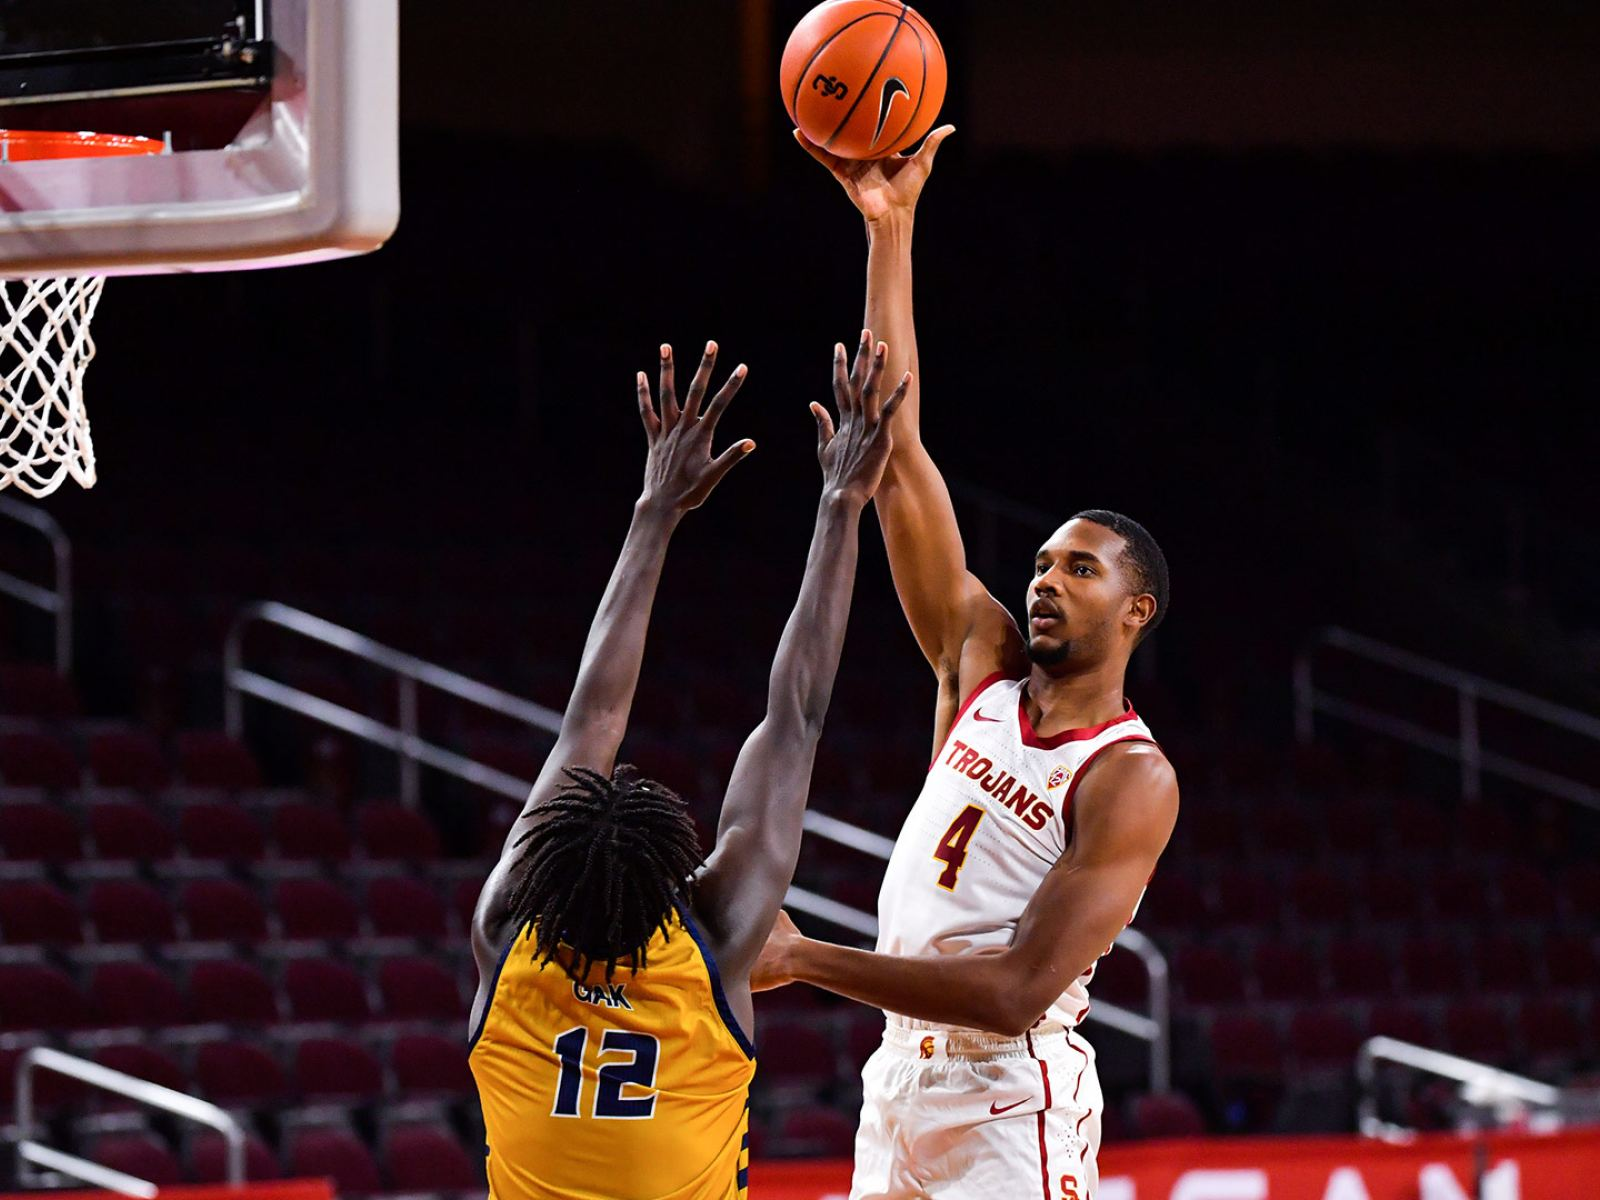 Main image for event titled USC Men's Basketball @ Utah